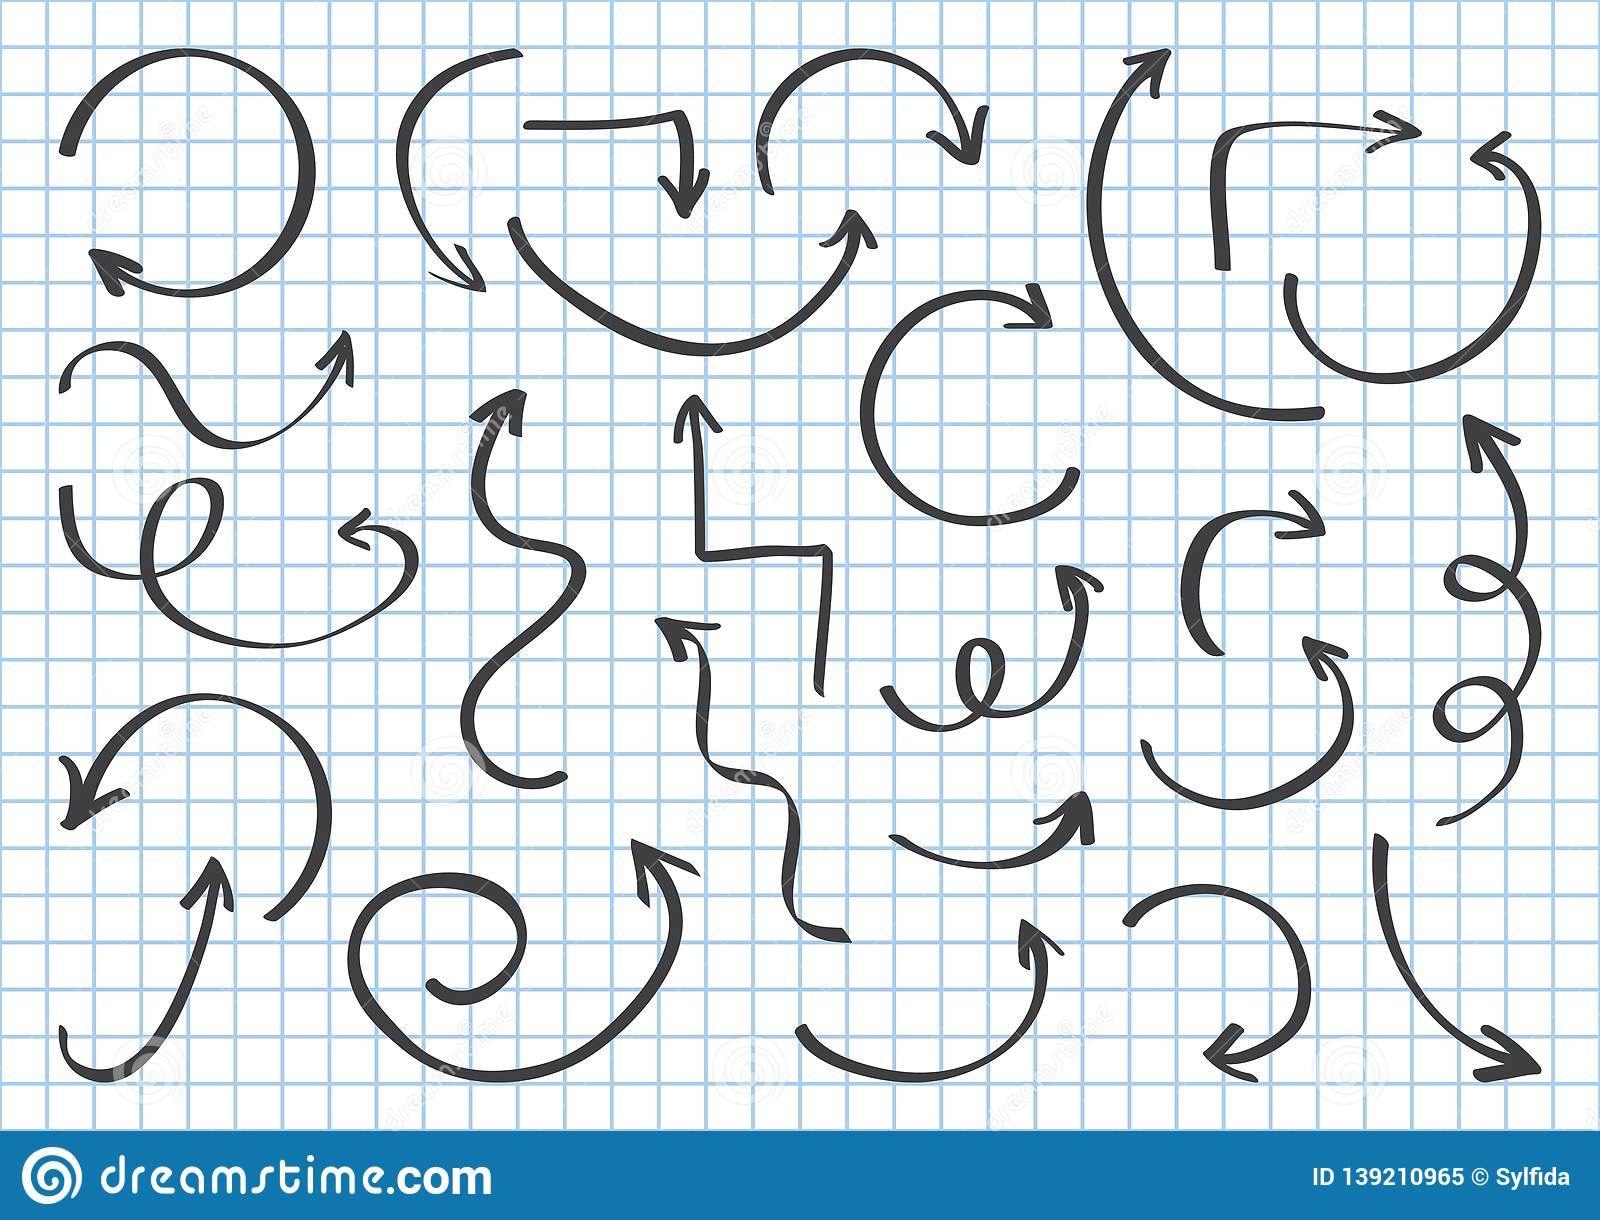 Set of black different arrows hand draw on checkered geometric background with blue lines. Vector illustration